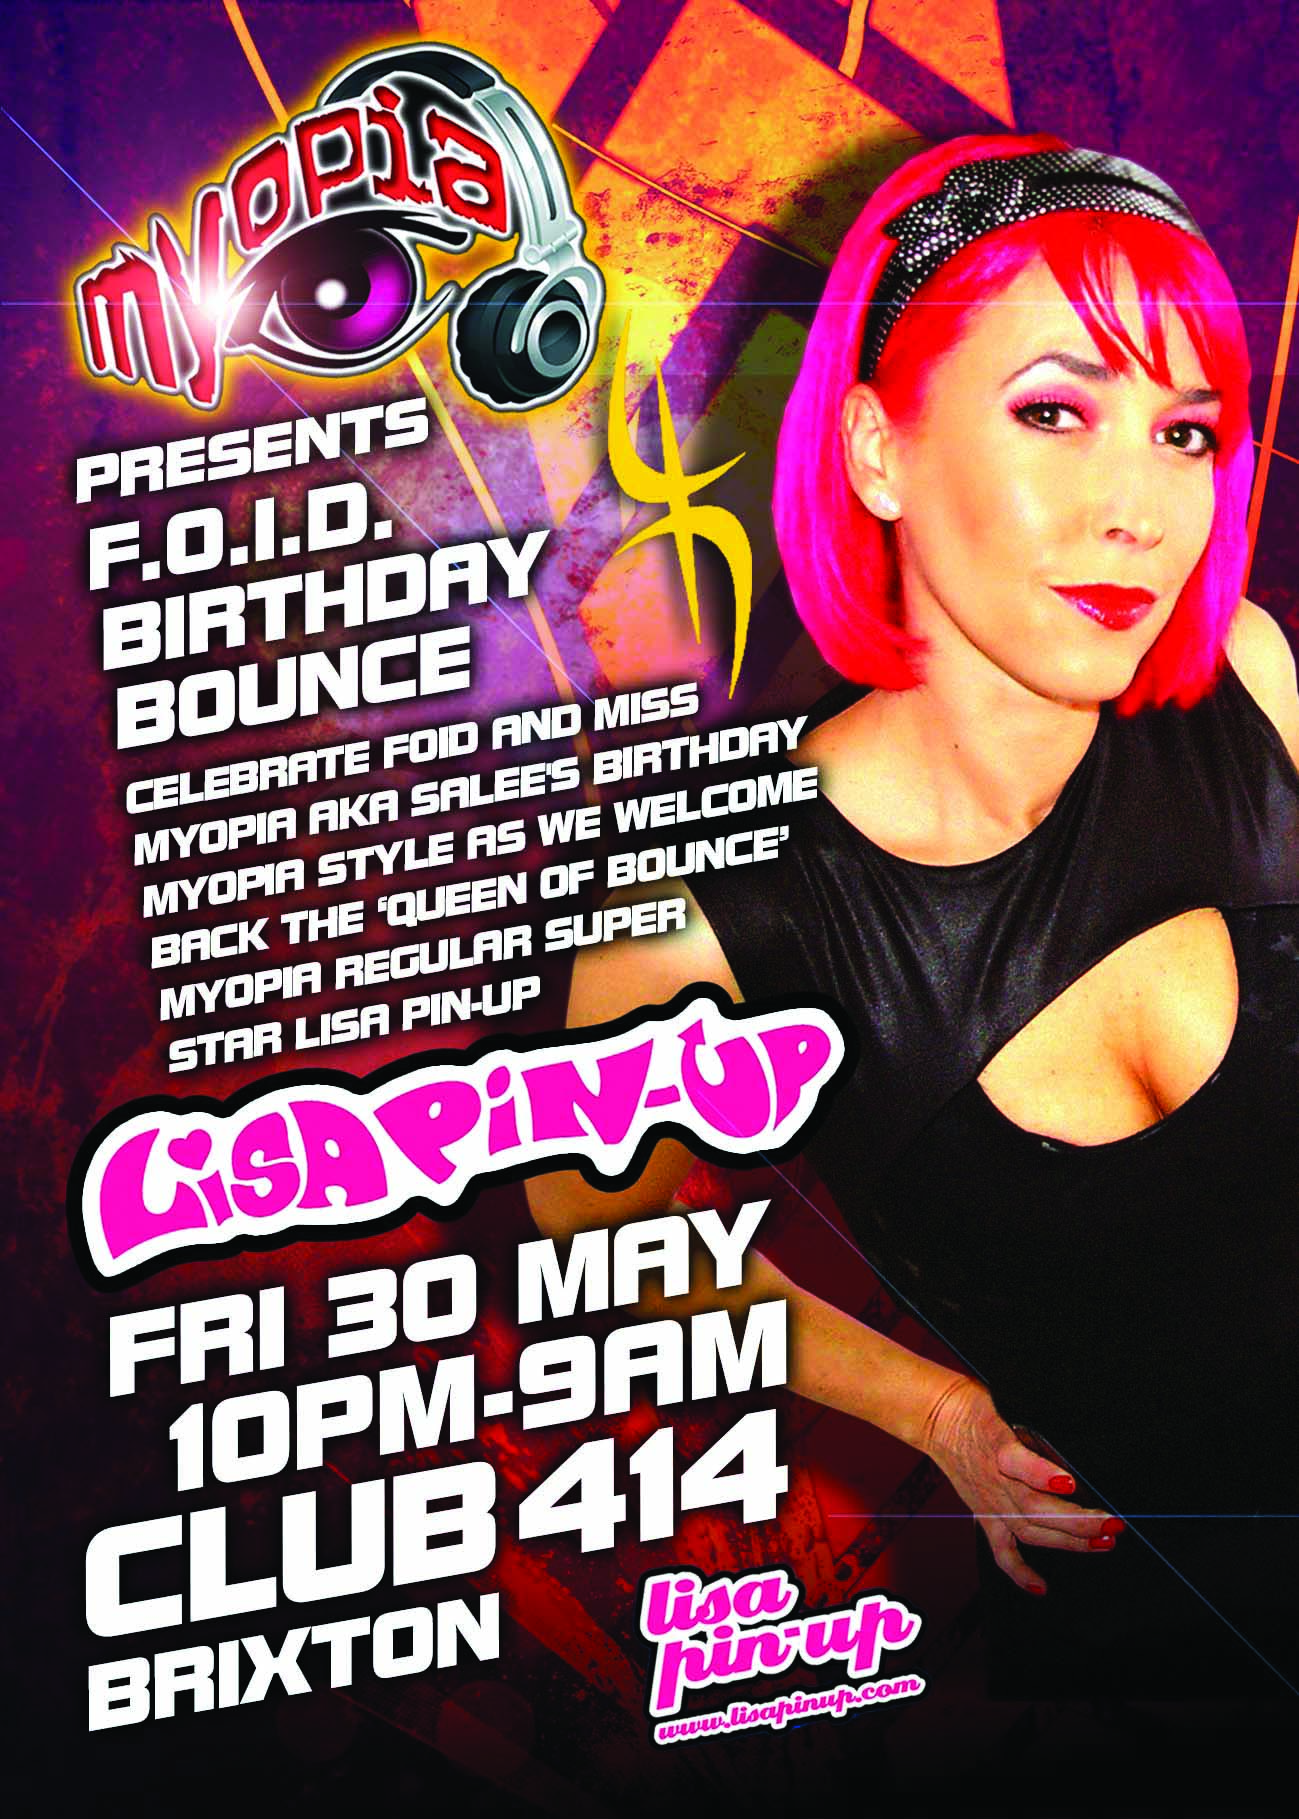 MYOPIA FOID's BIRTHDAY BOUNCE WITH LISA PIN UP